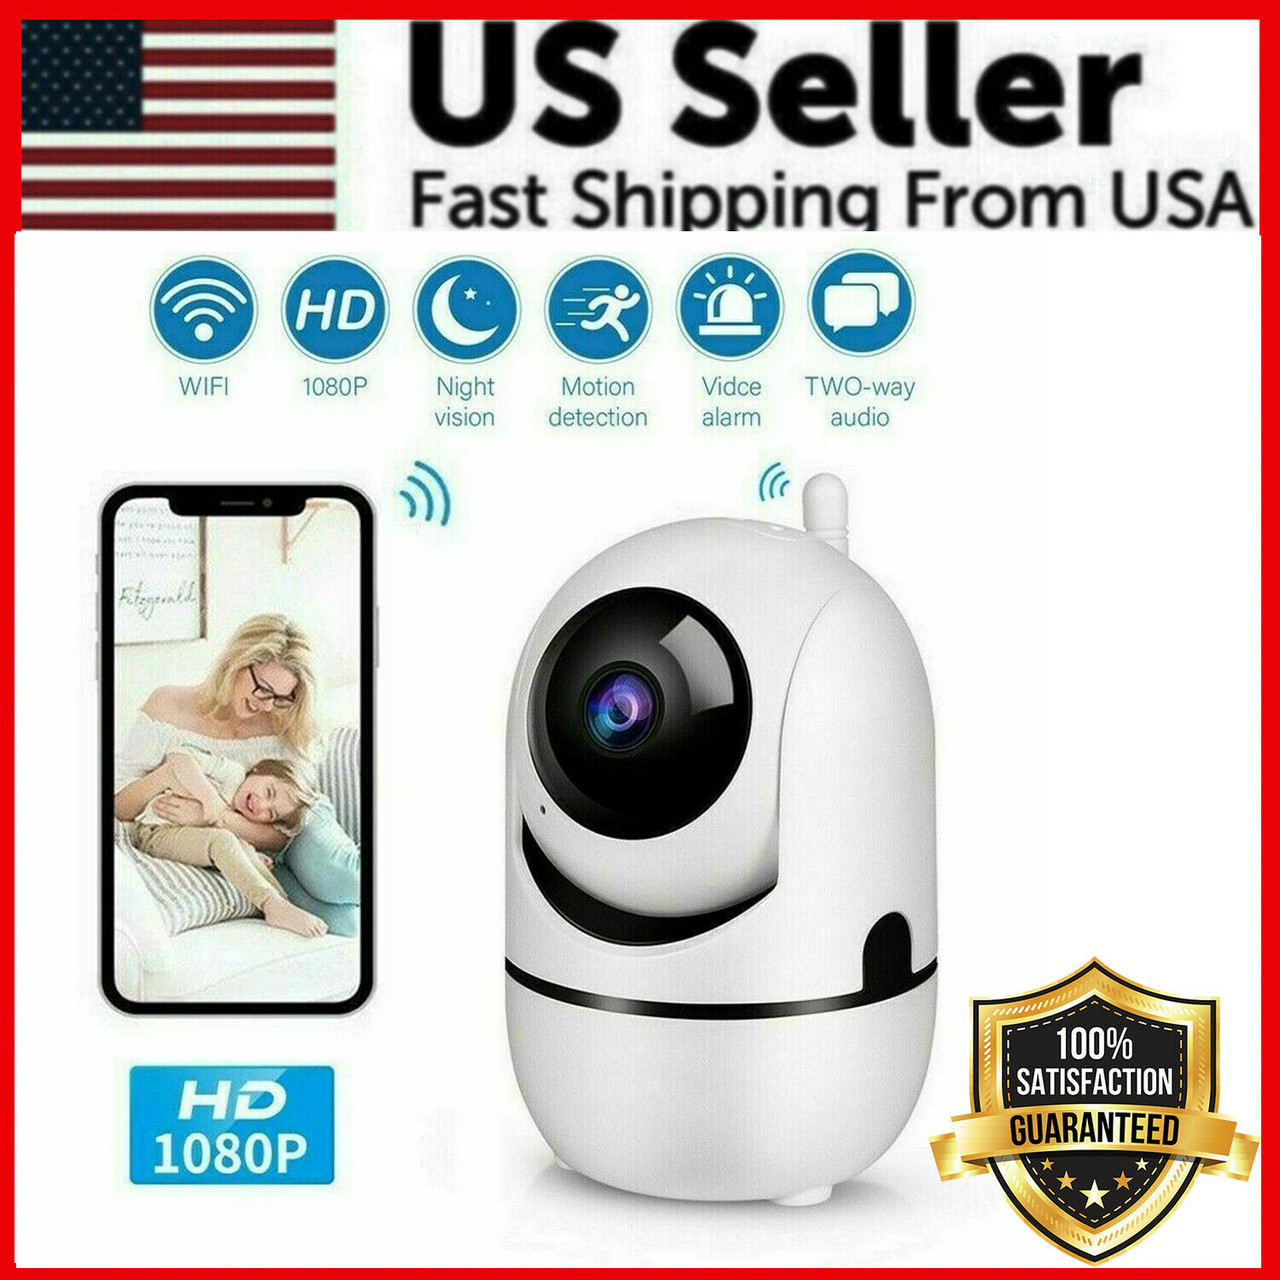 1080p WiFi Wireless Indoor Home Security Camera Night Vision Baby Pet Monitor